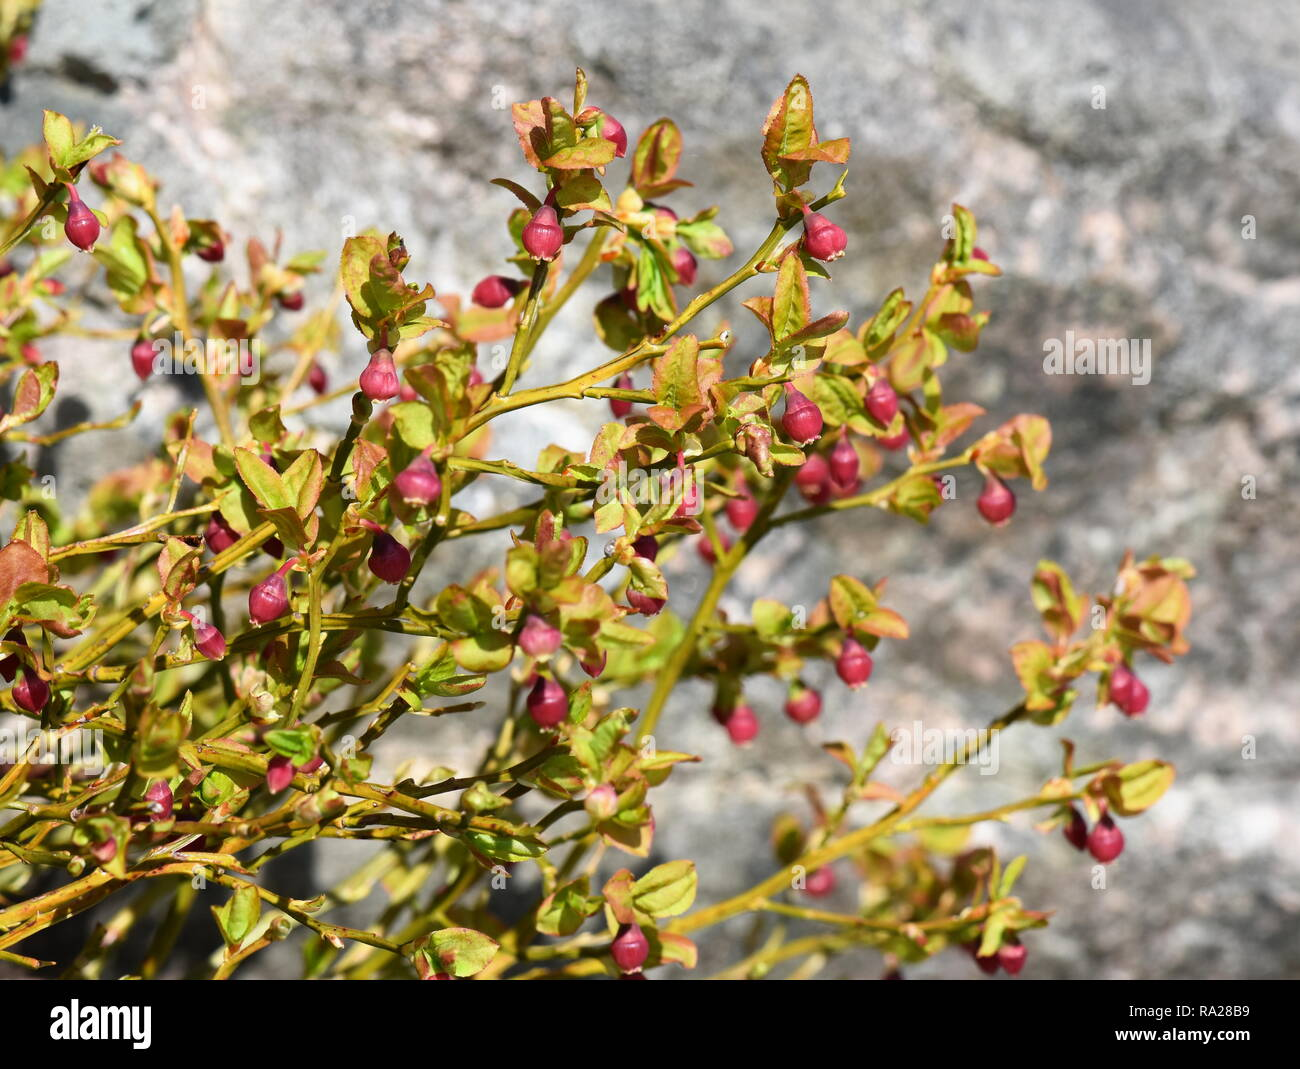 Blueberry Plant Flowers High Resolution Stock Photography And Images Alamy